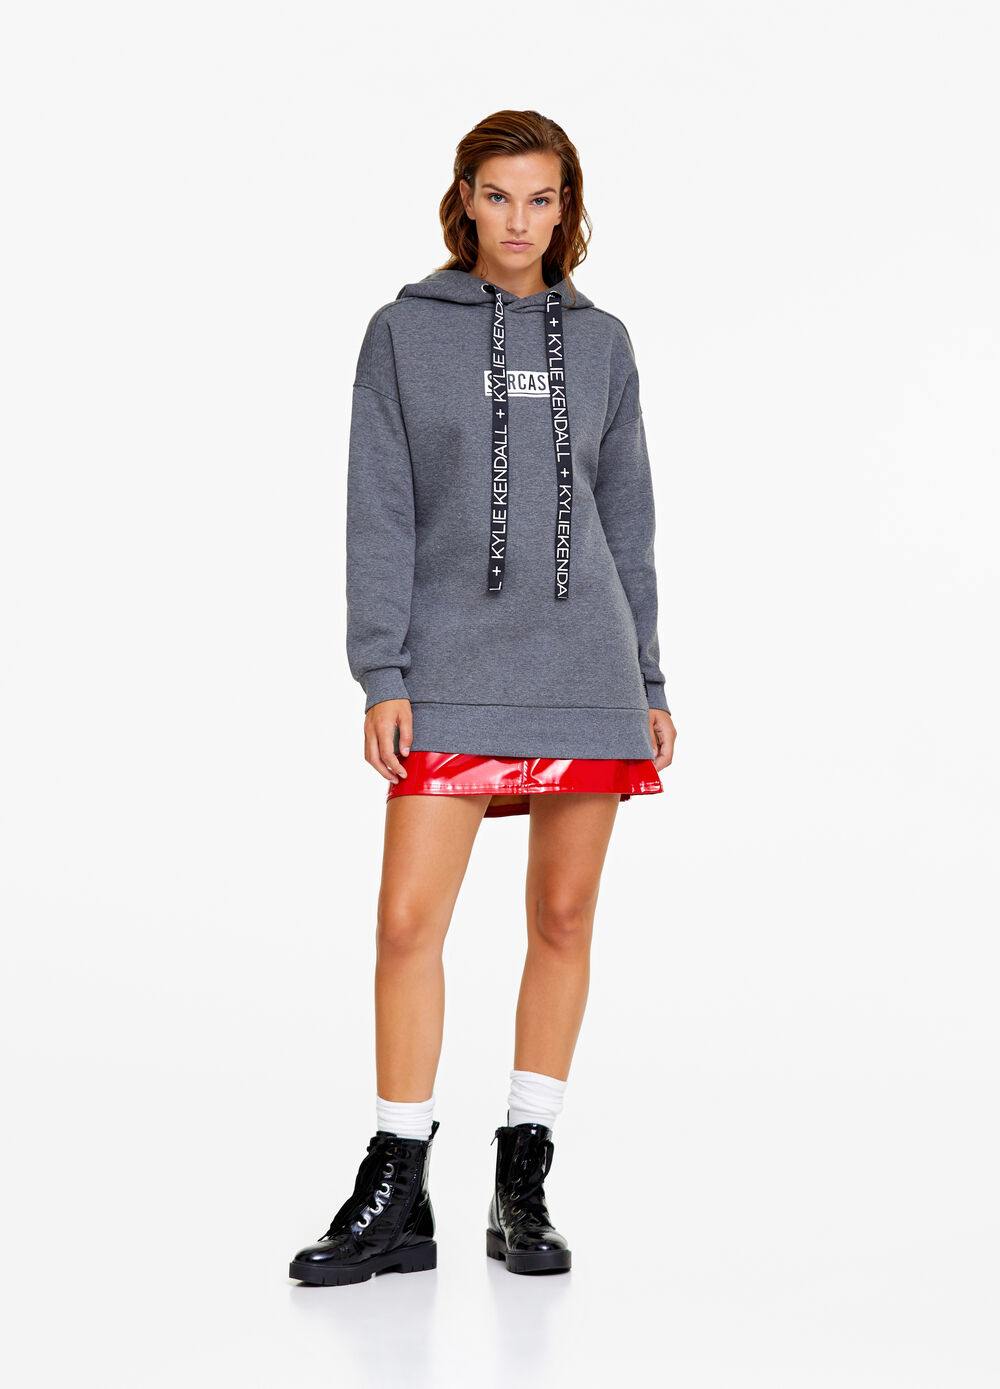 K+K for OVS long mélange sweatshirt